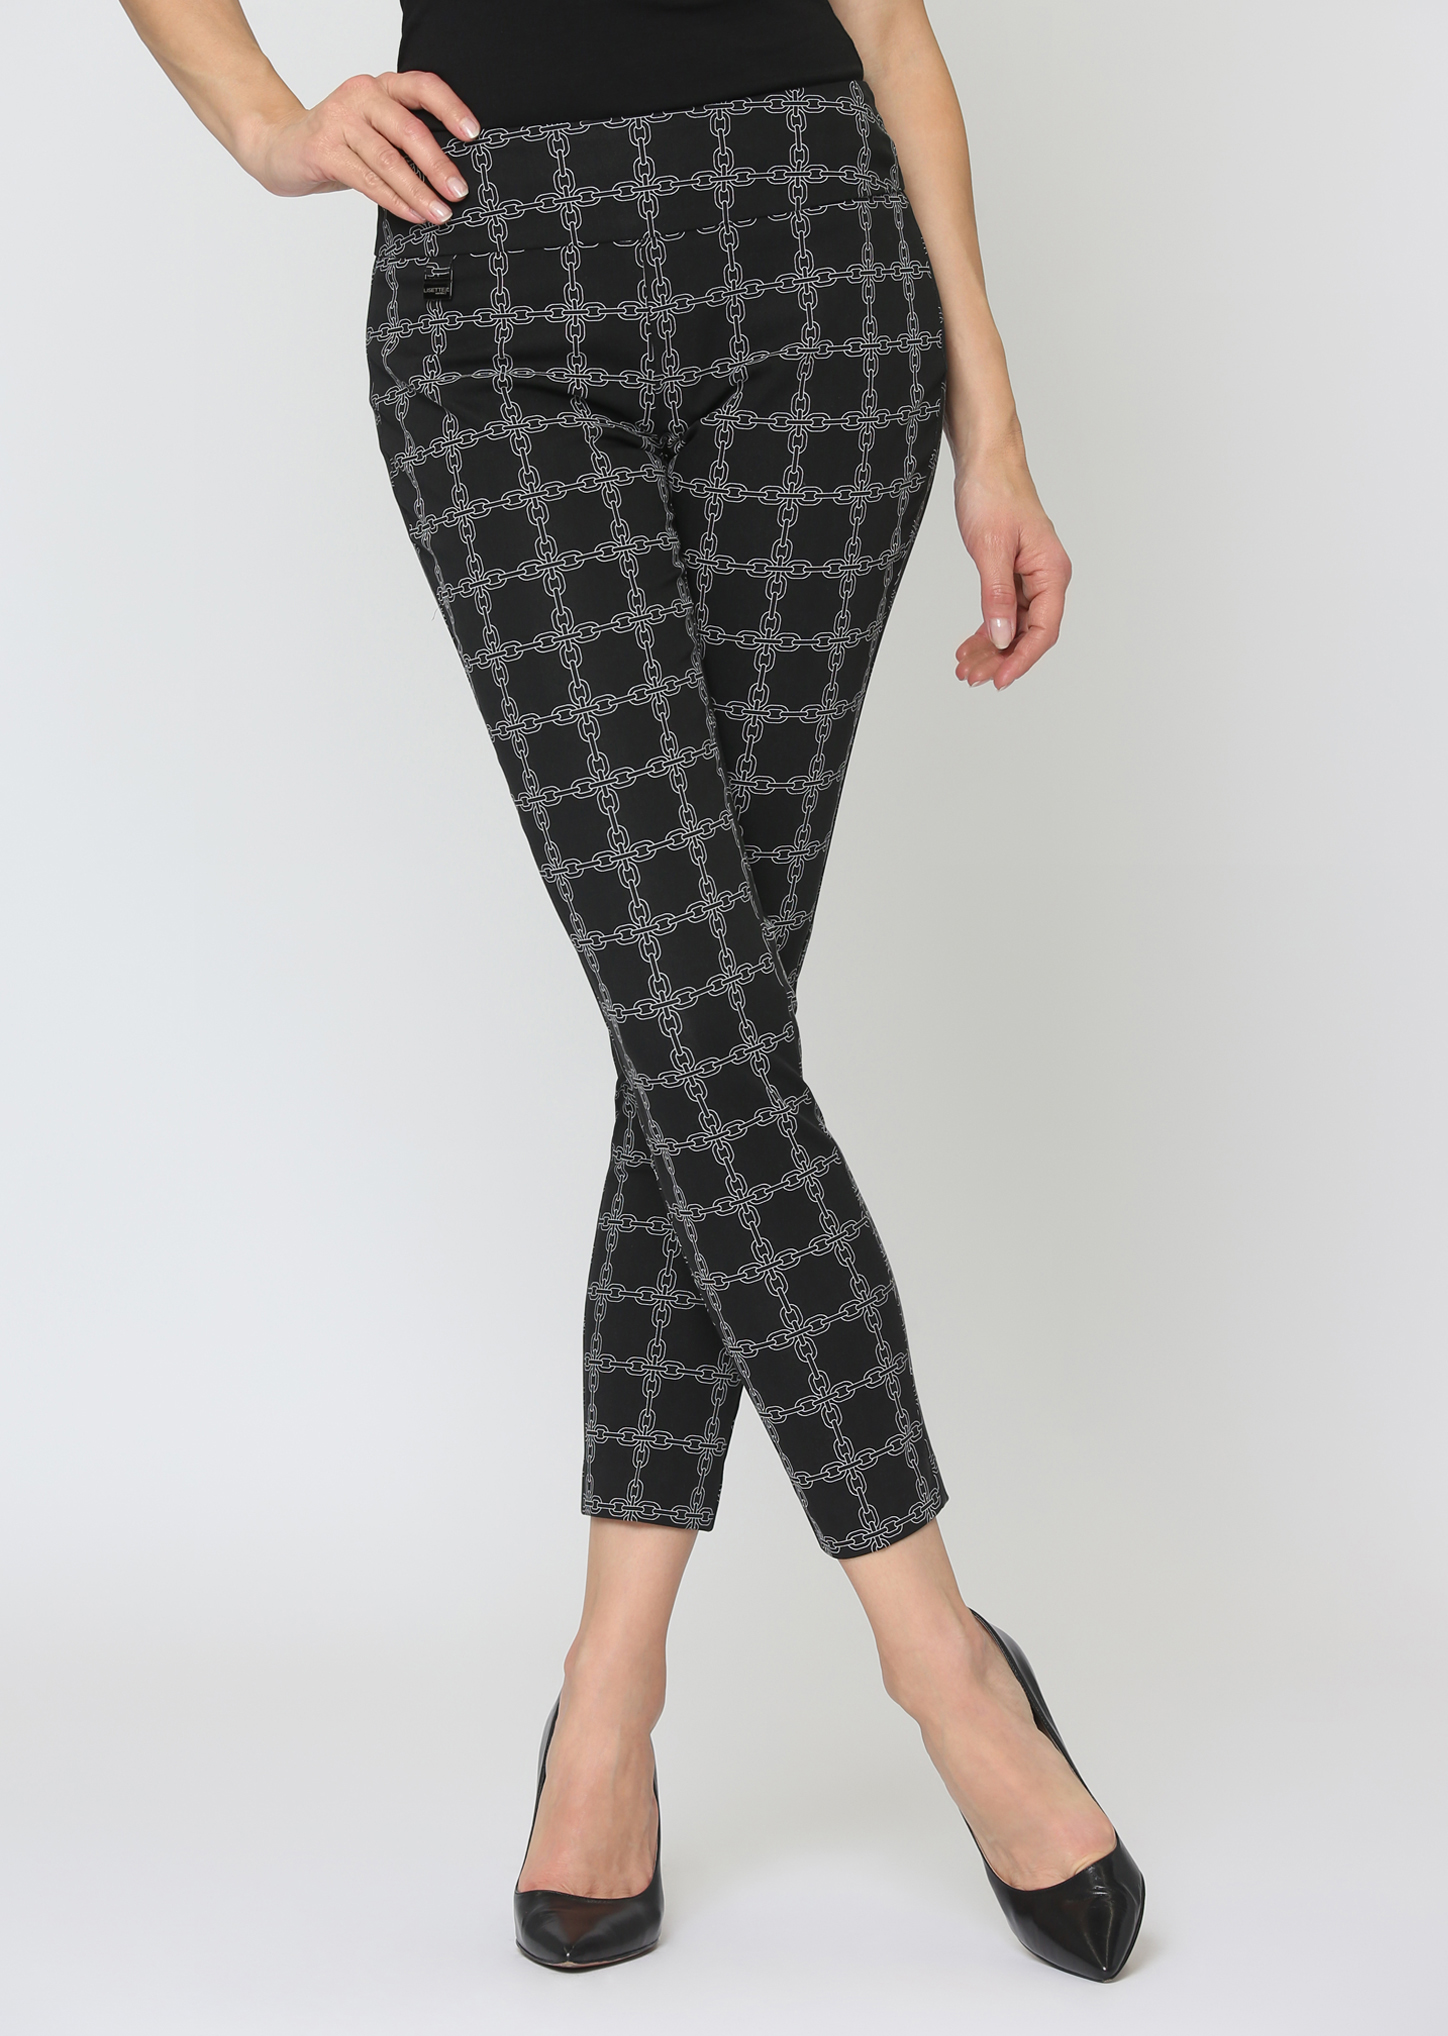 Lisette L. Thinny Crop Pant Style 65502 Chain Link Print Color Black-White